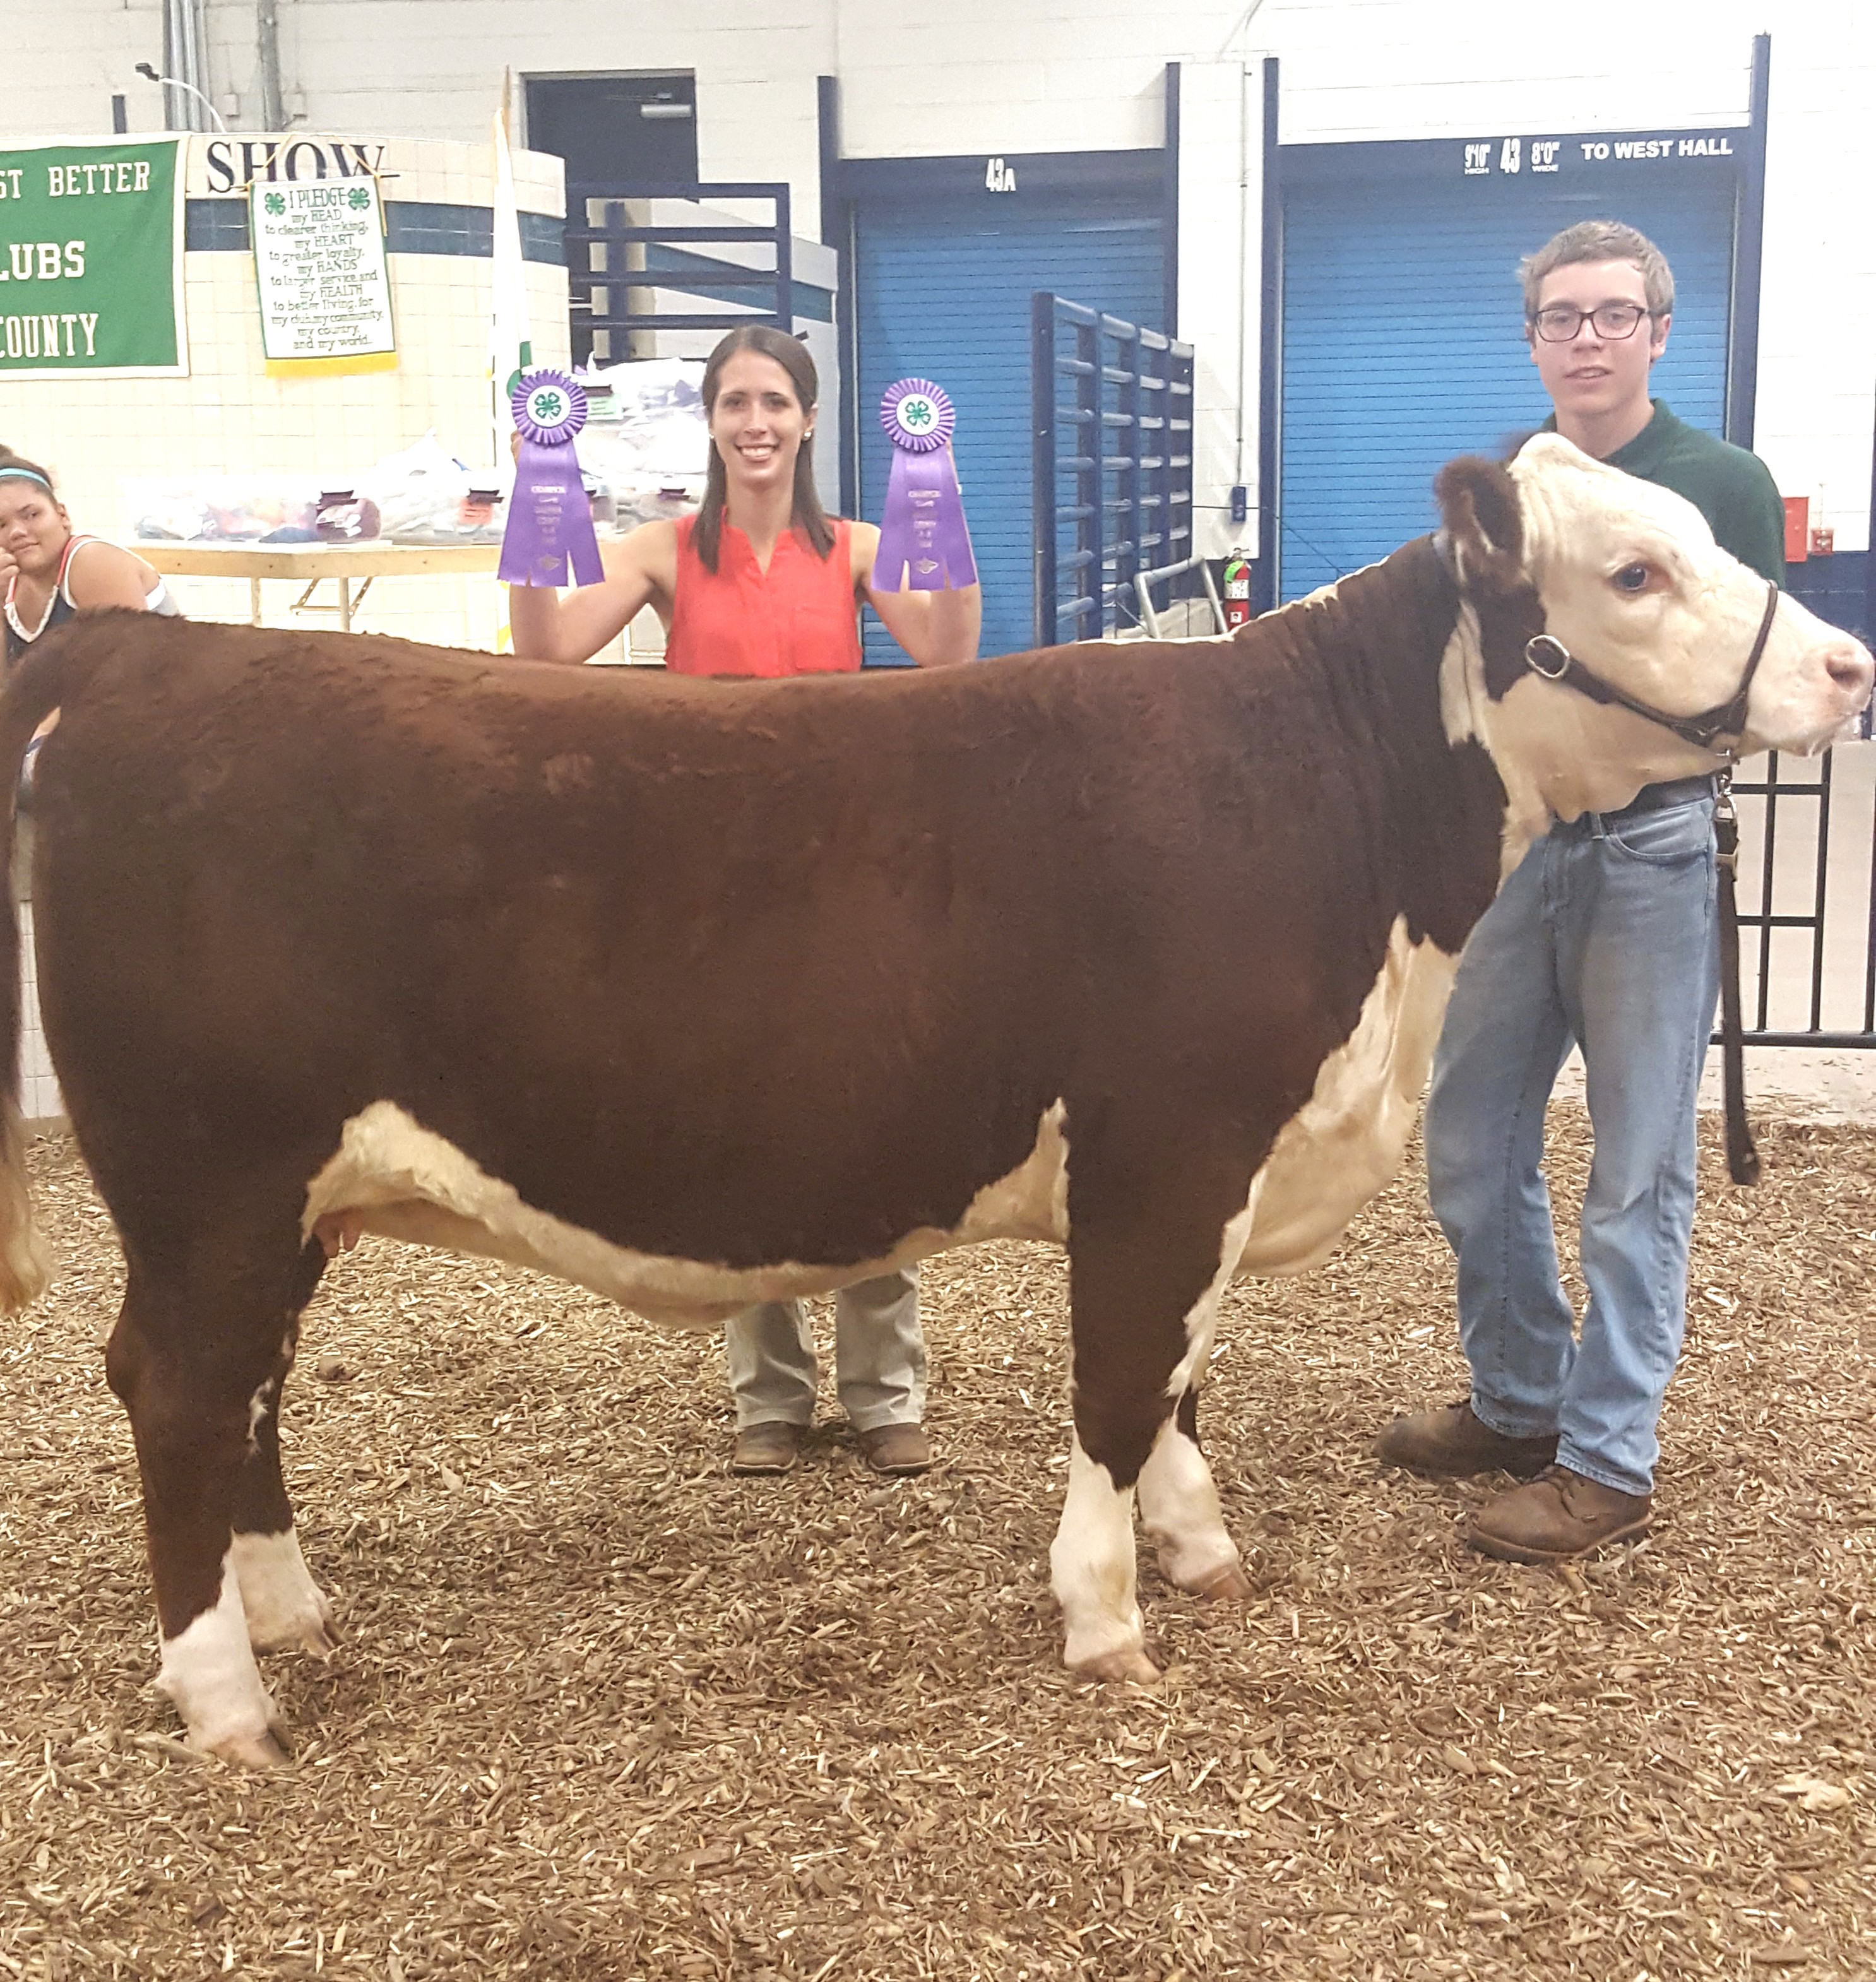 MHS Students Attend Dauphin County 4H Fair - Milton Hershey